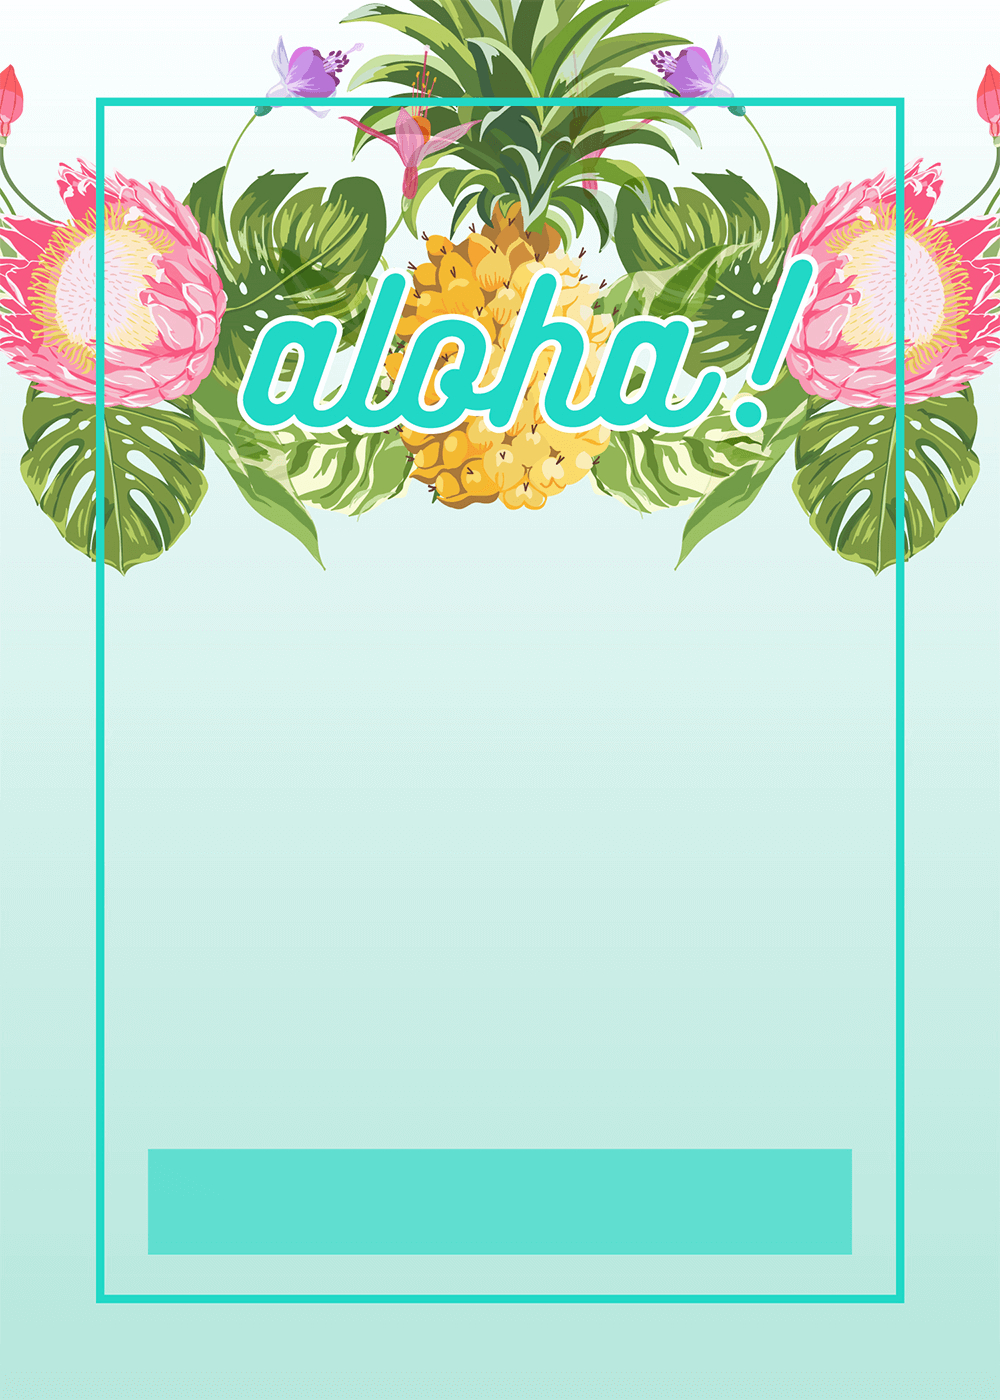 Pineapple Luau Perimeter - Free Printable Birthday Invitation - Free Printable Pineapple Invitations